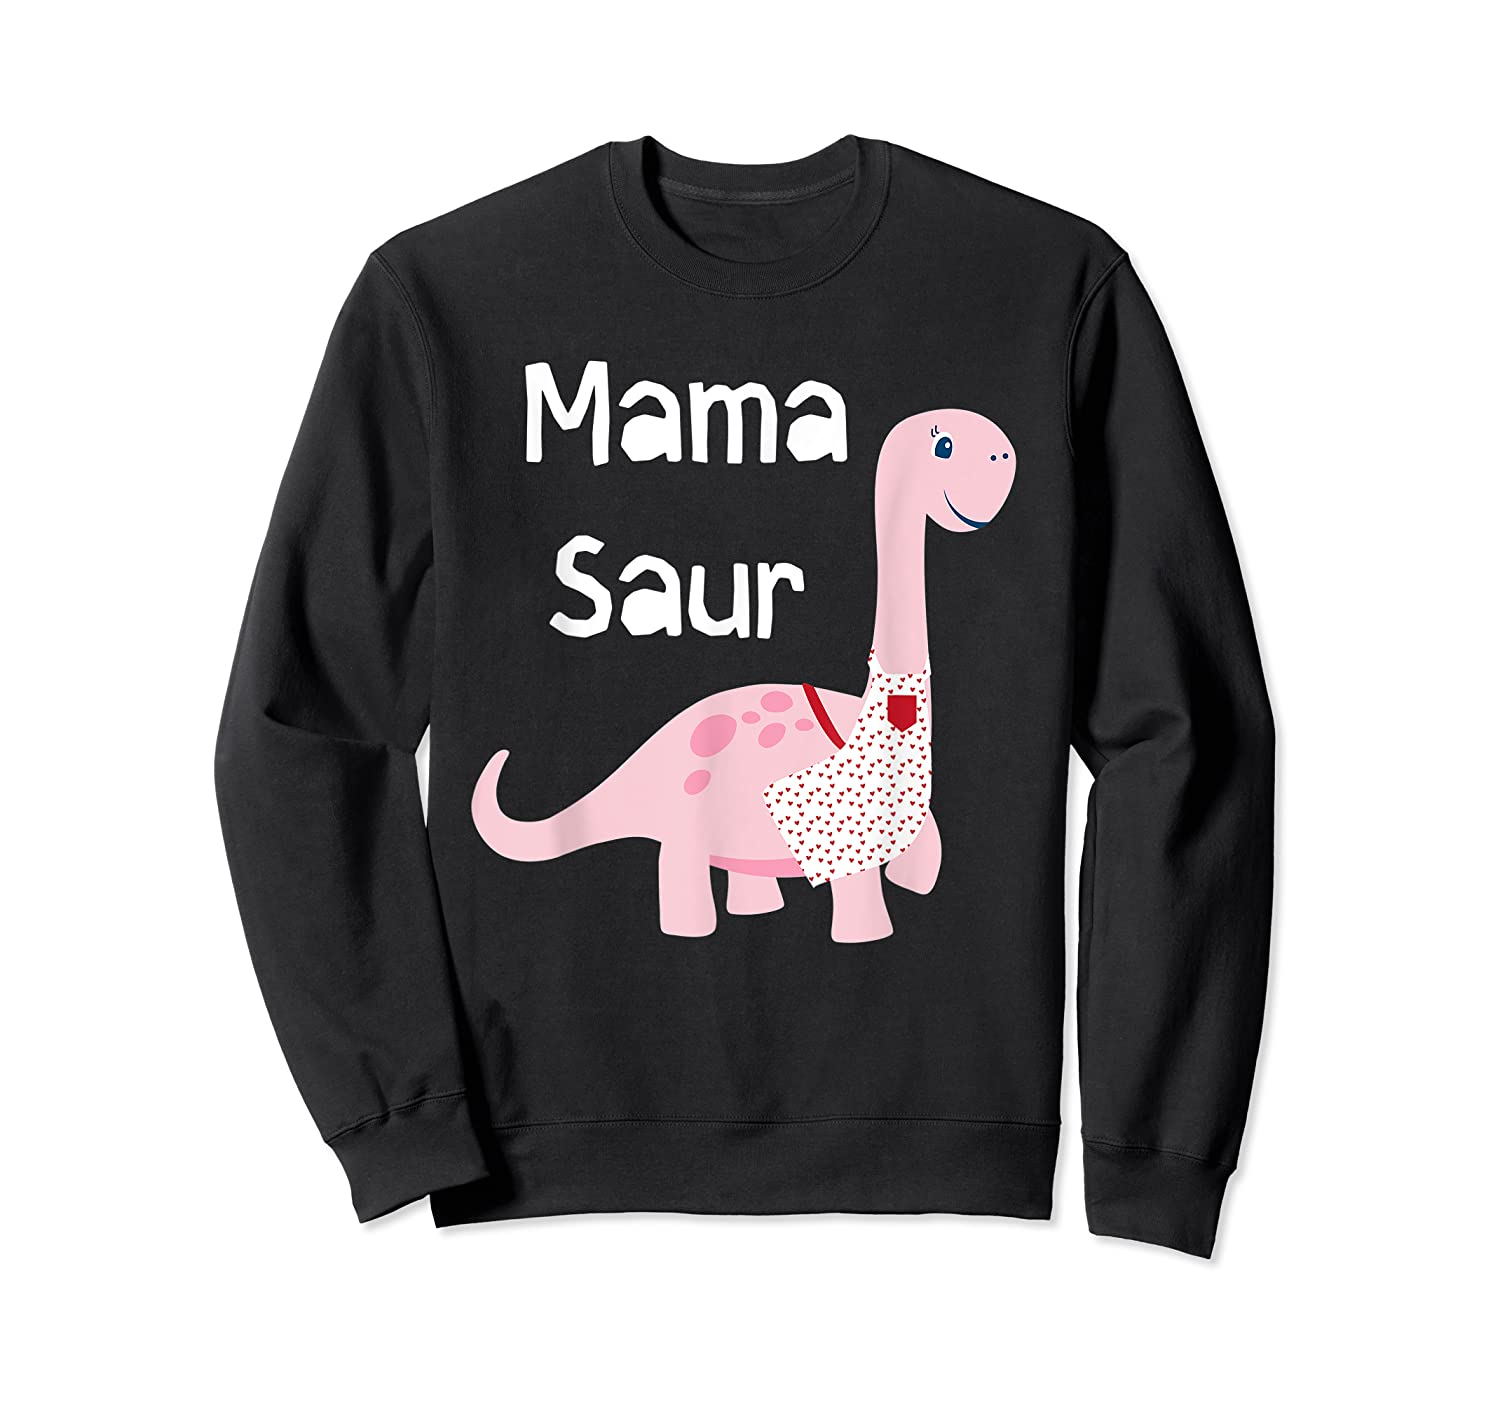 Mama Saur Dino Mom T Shirt Funny Gift For Mothers Day Crewneck Sweater